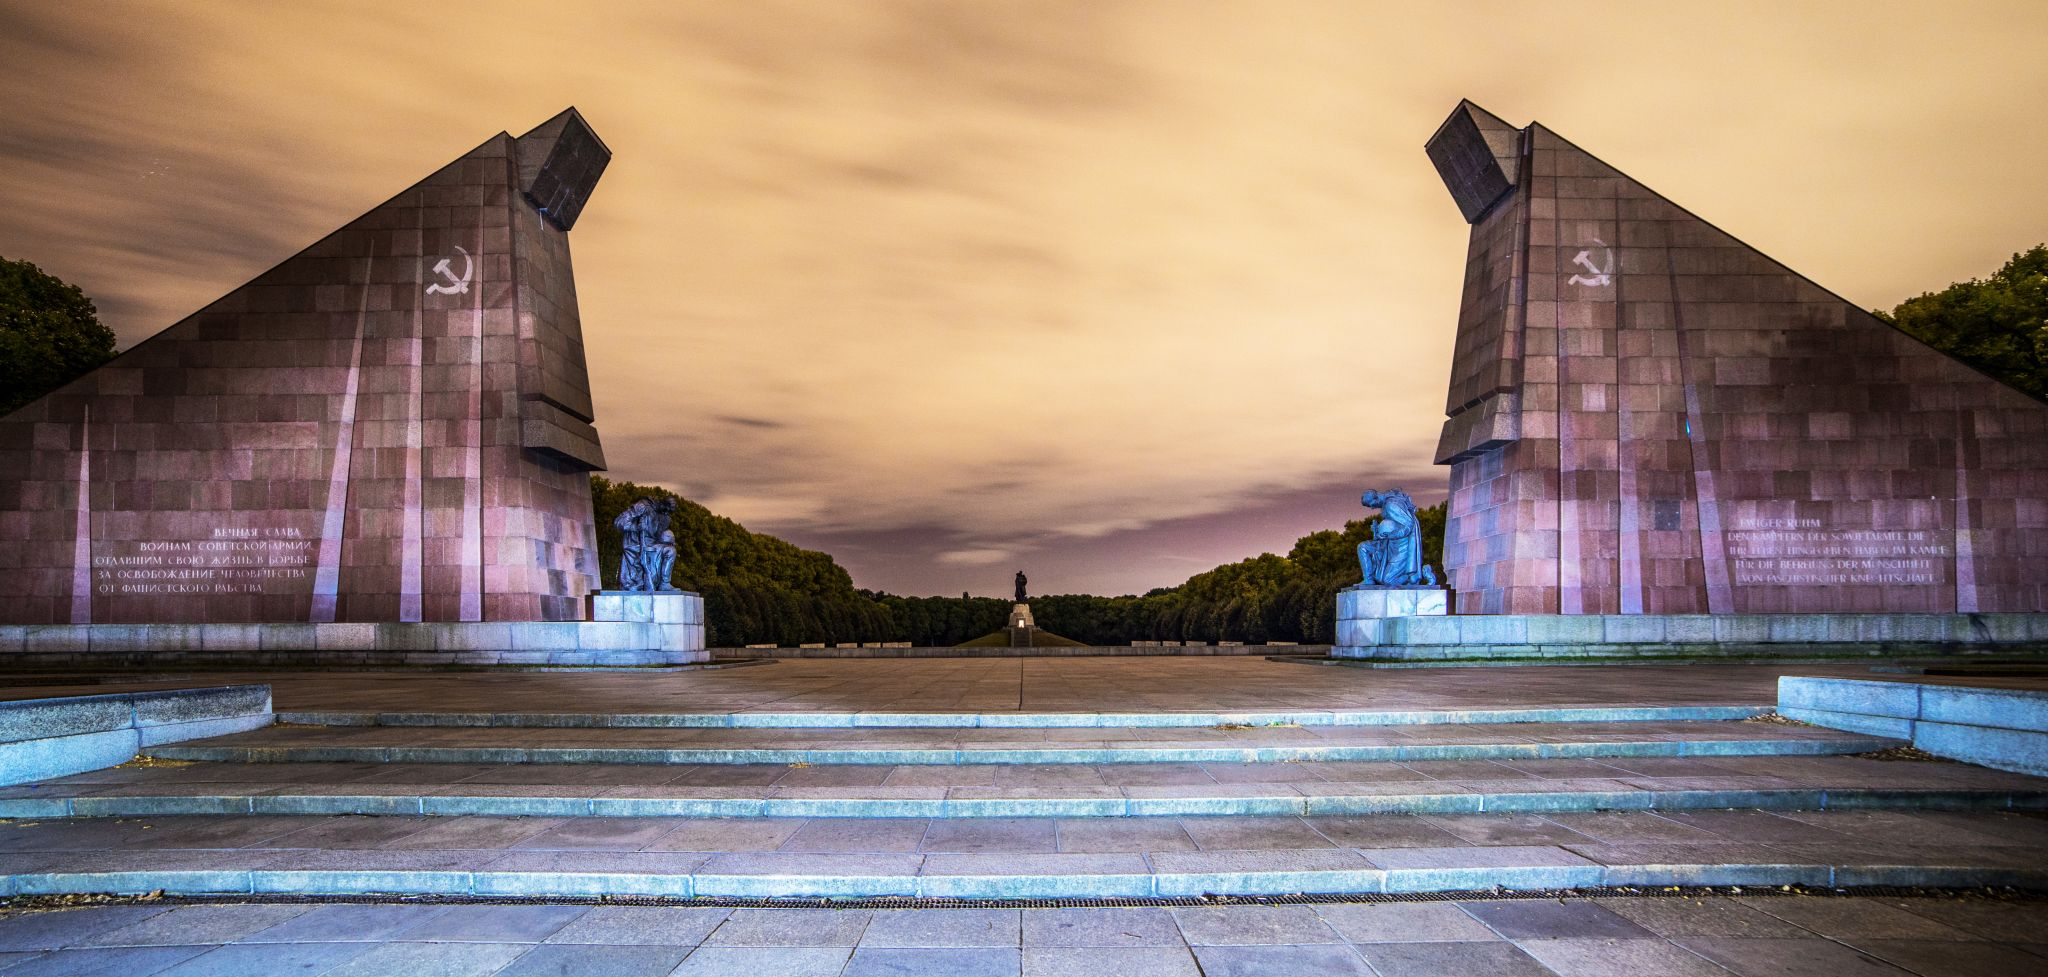 Soviet War Memorial (Treptower Park), Germany